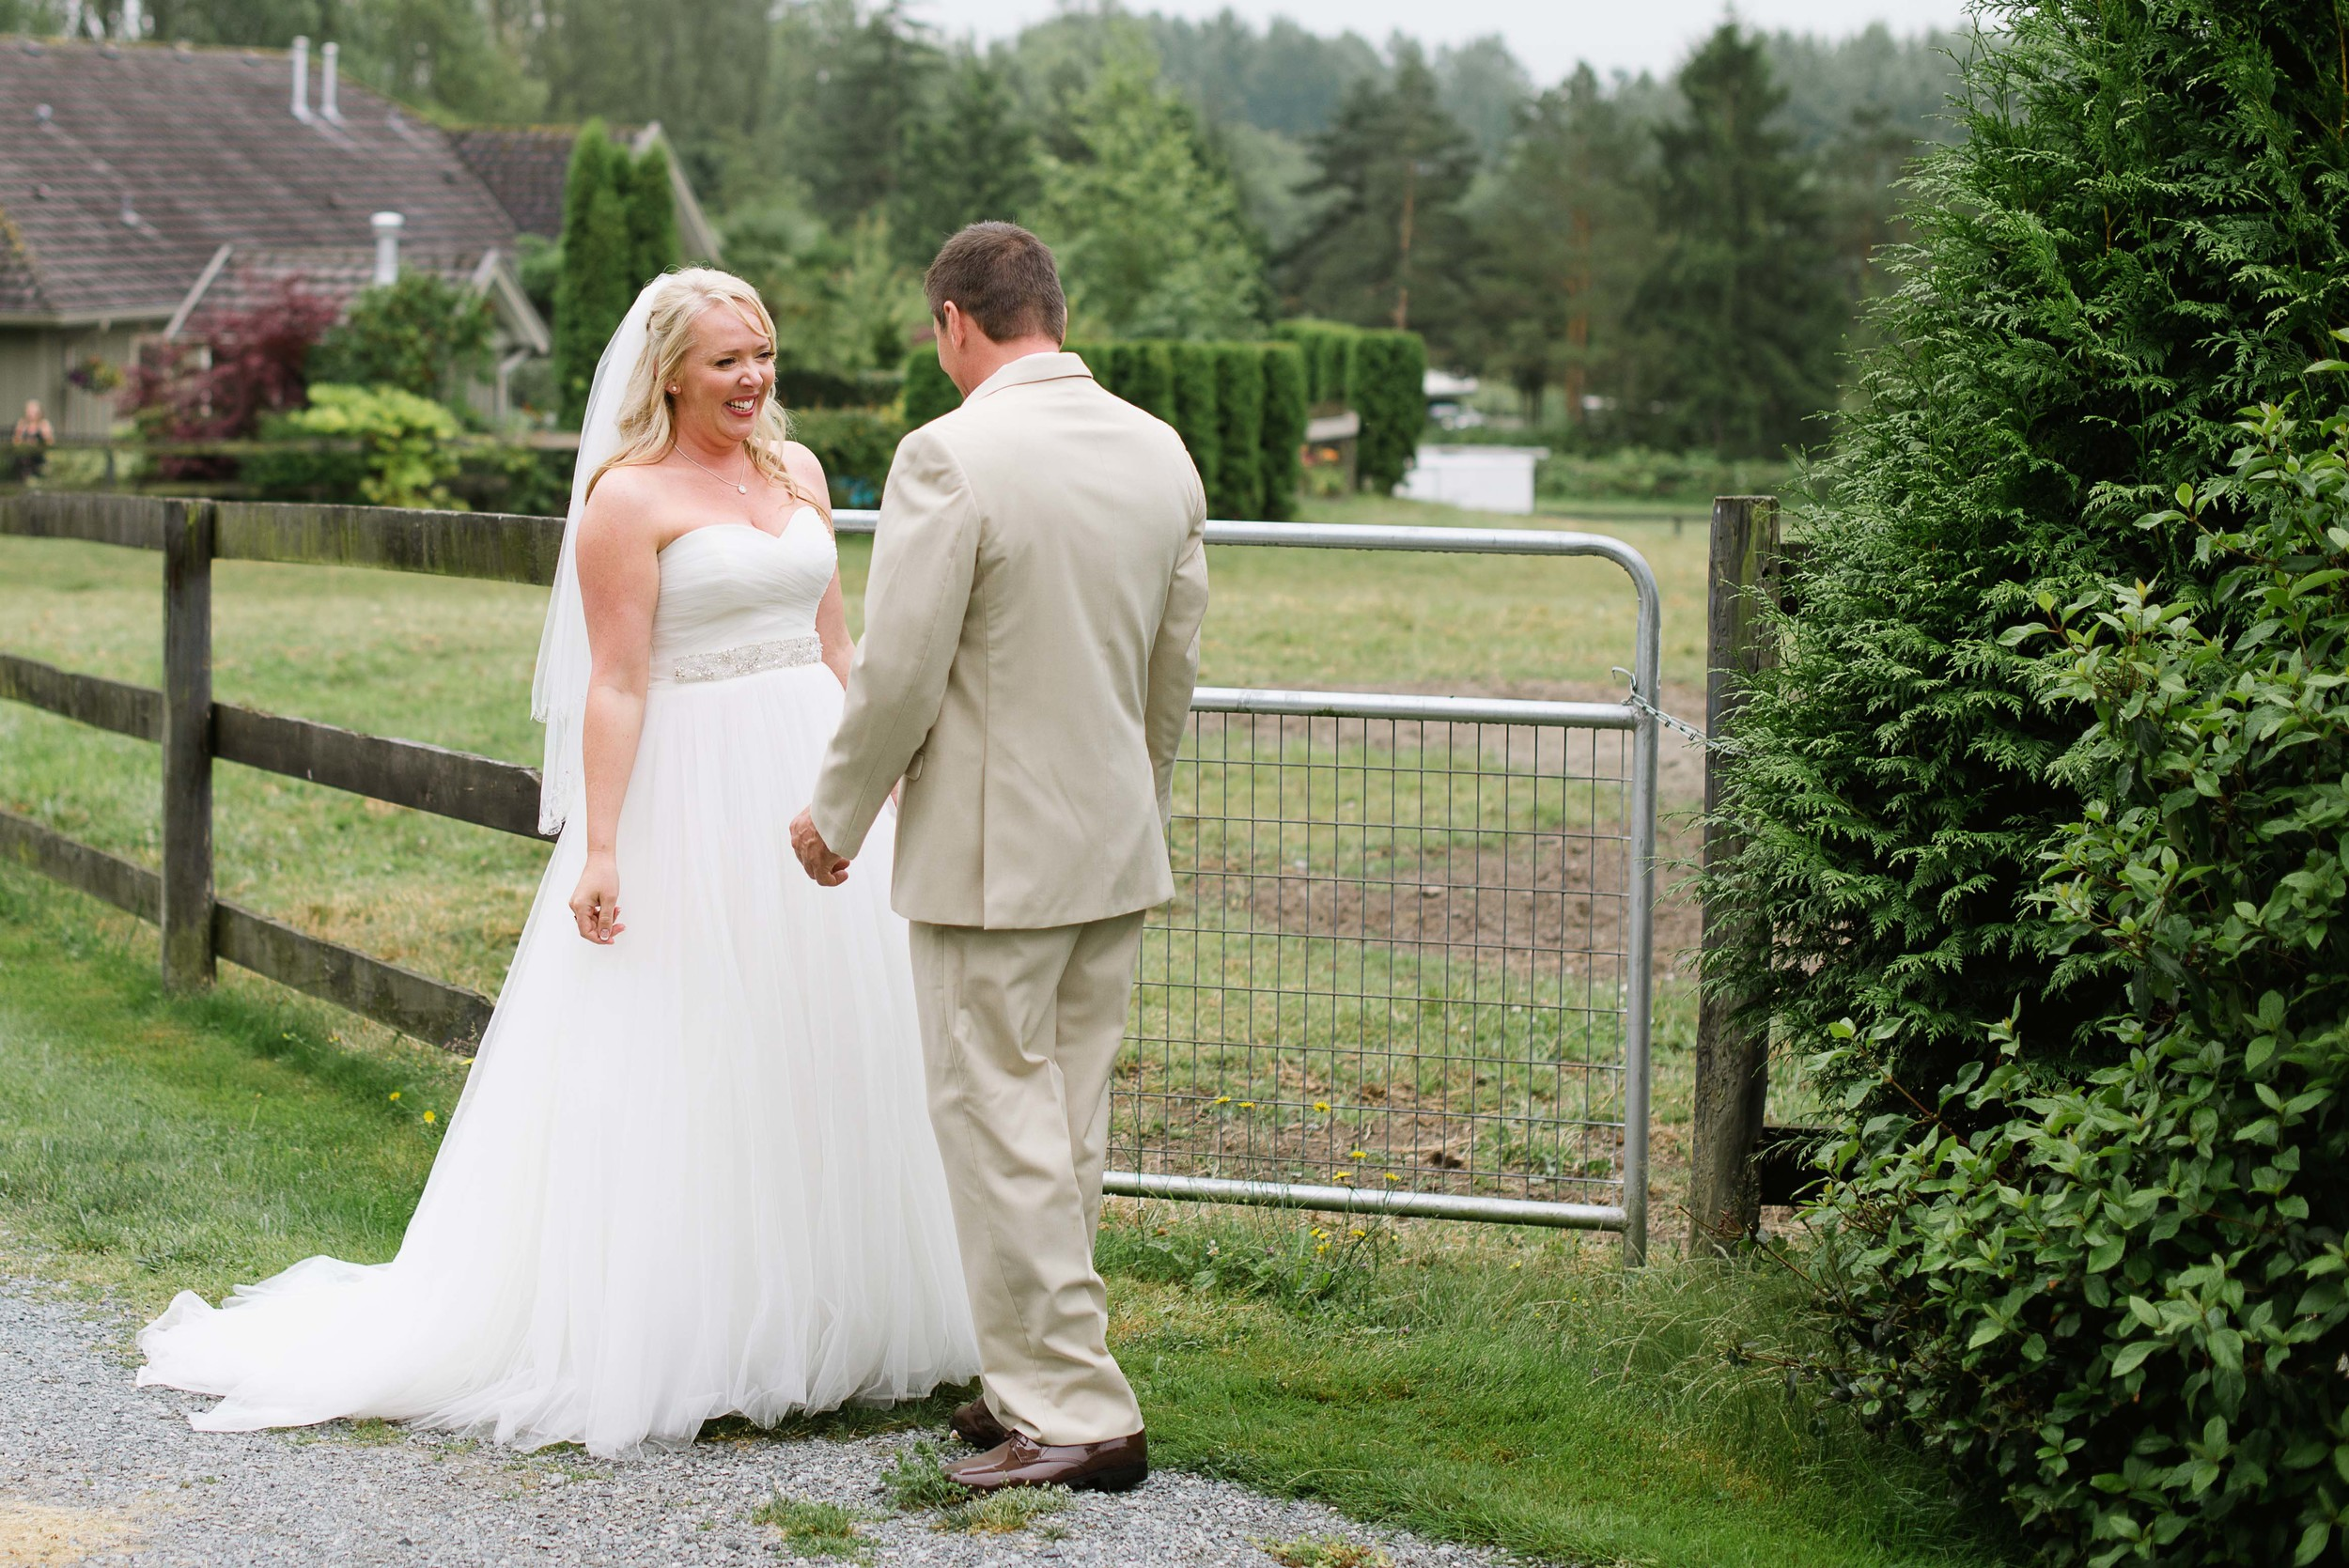 Langley_Wedding_Second Shooting_Photography_Vancouver-4.jpg